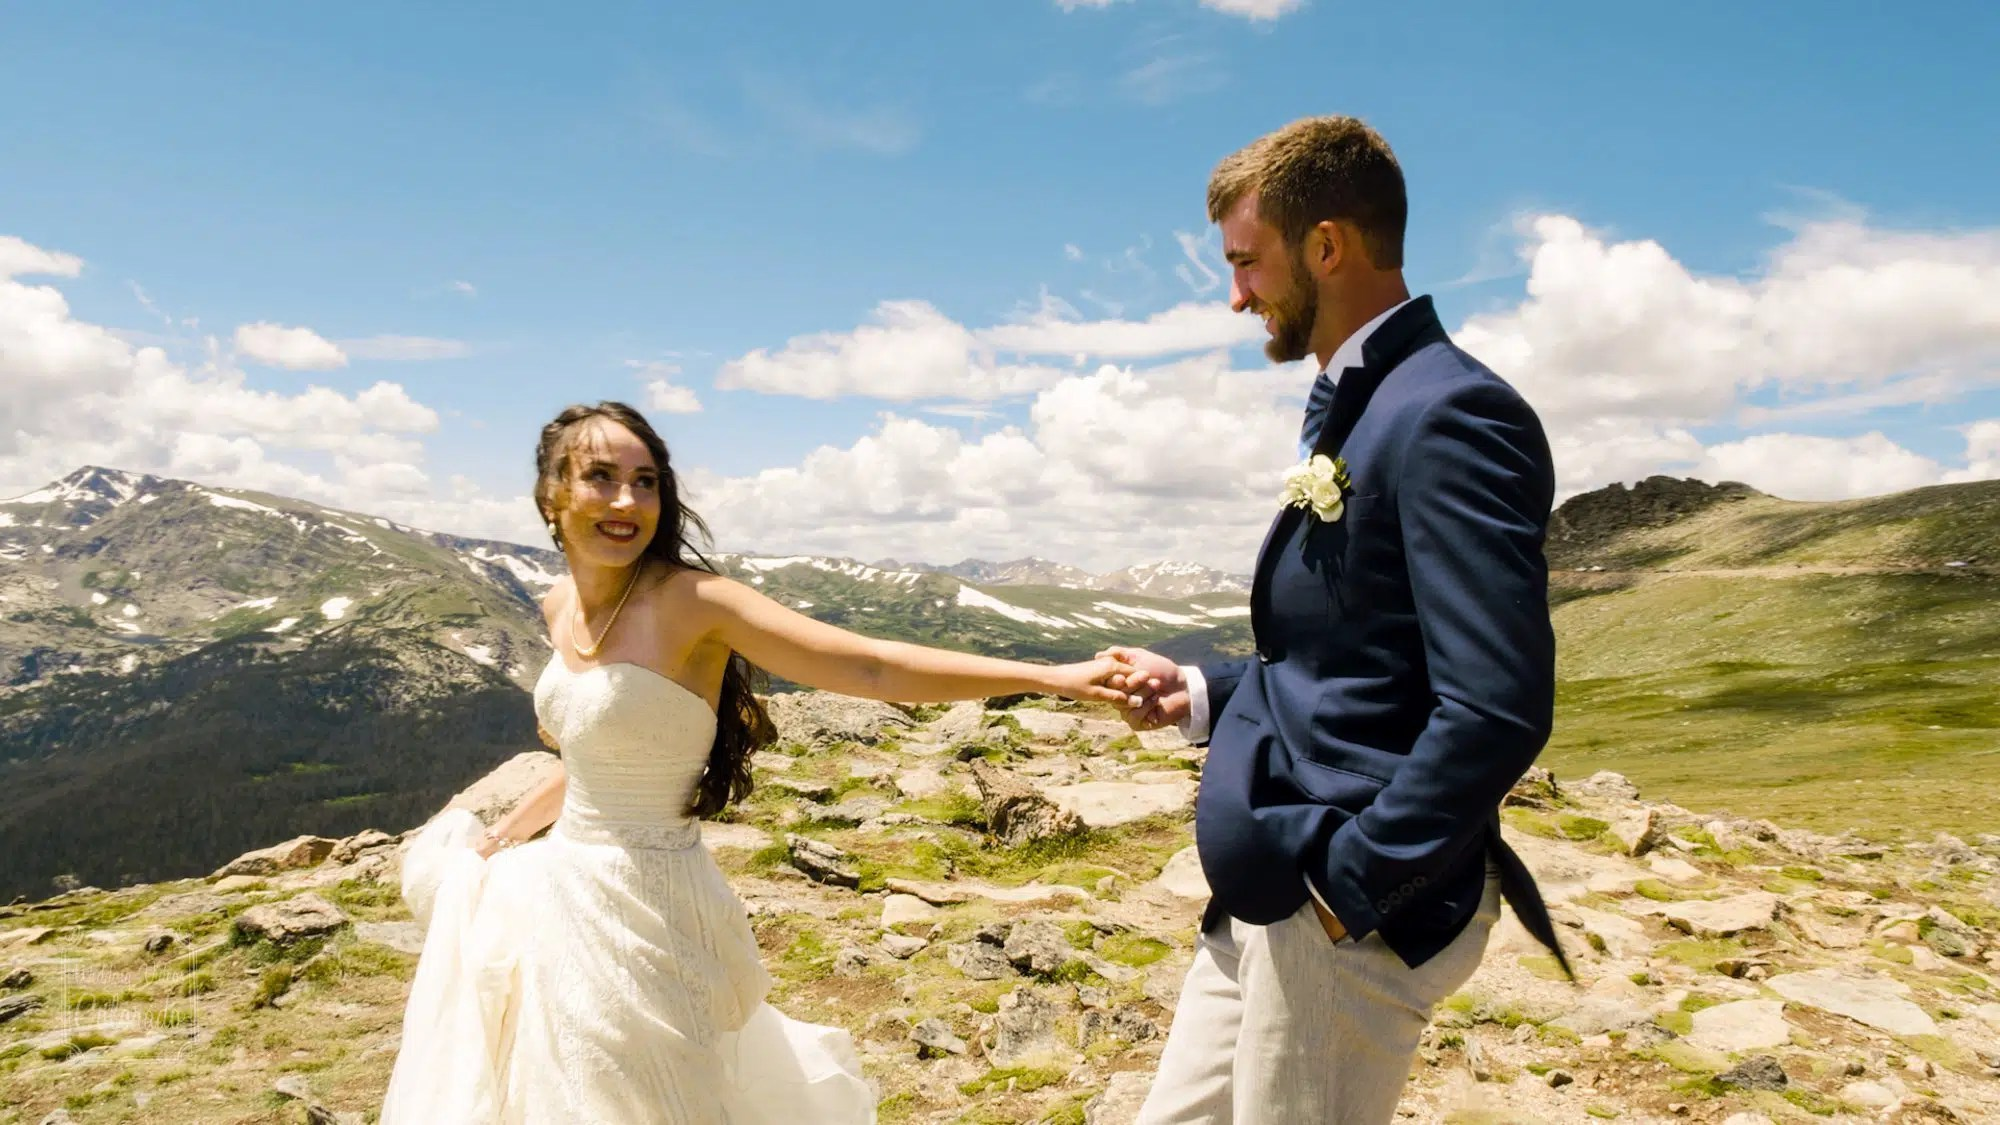 Chris Kerrigan Rocky Mountain Estes Park Wedding Video